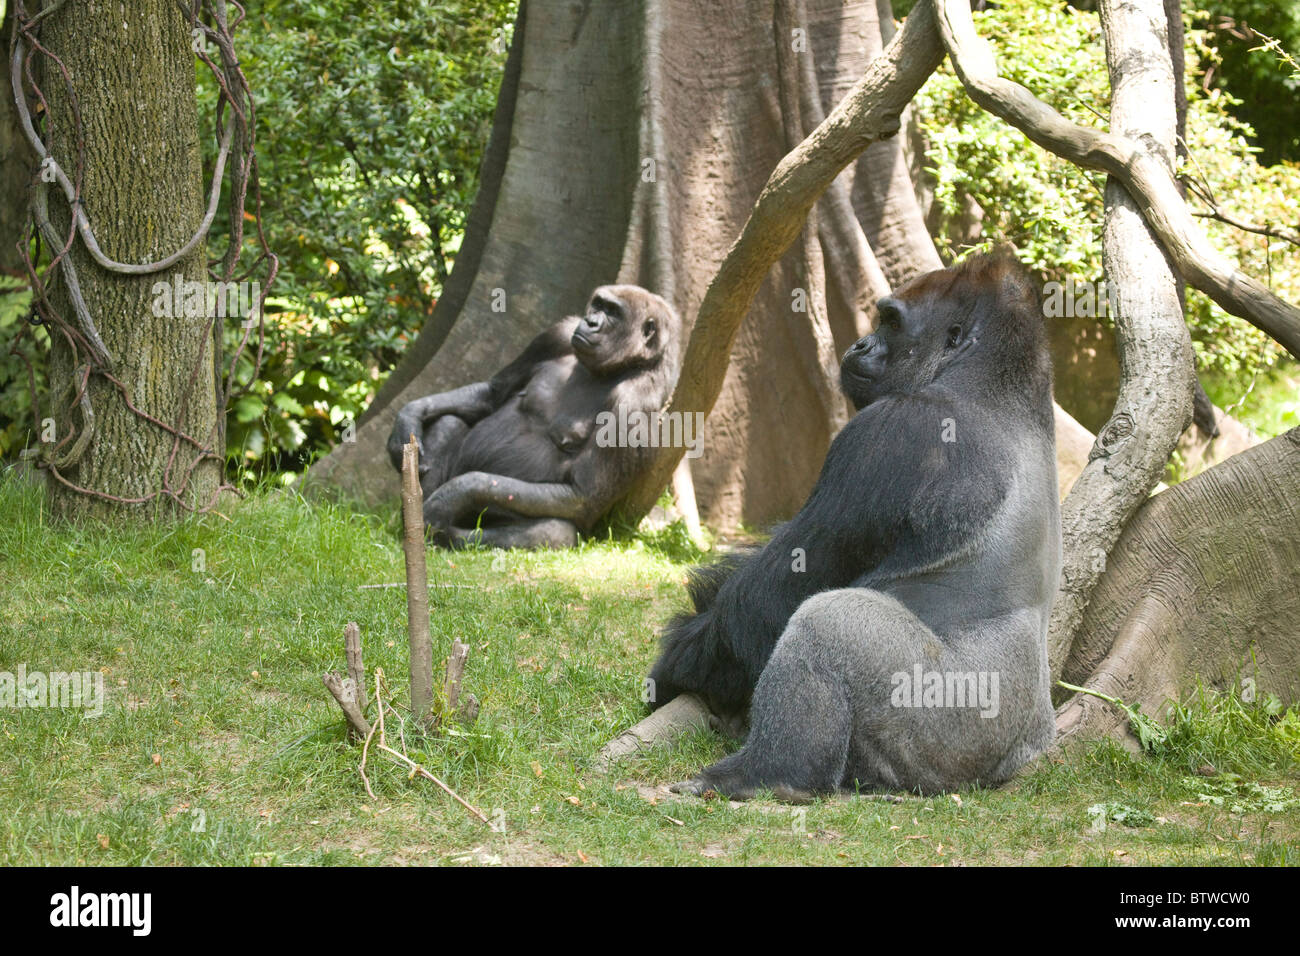 Congo Gorilla Forest Enclosure At The Bronx Zoo Stock Photo